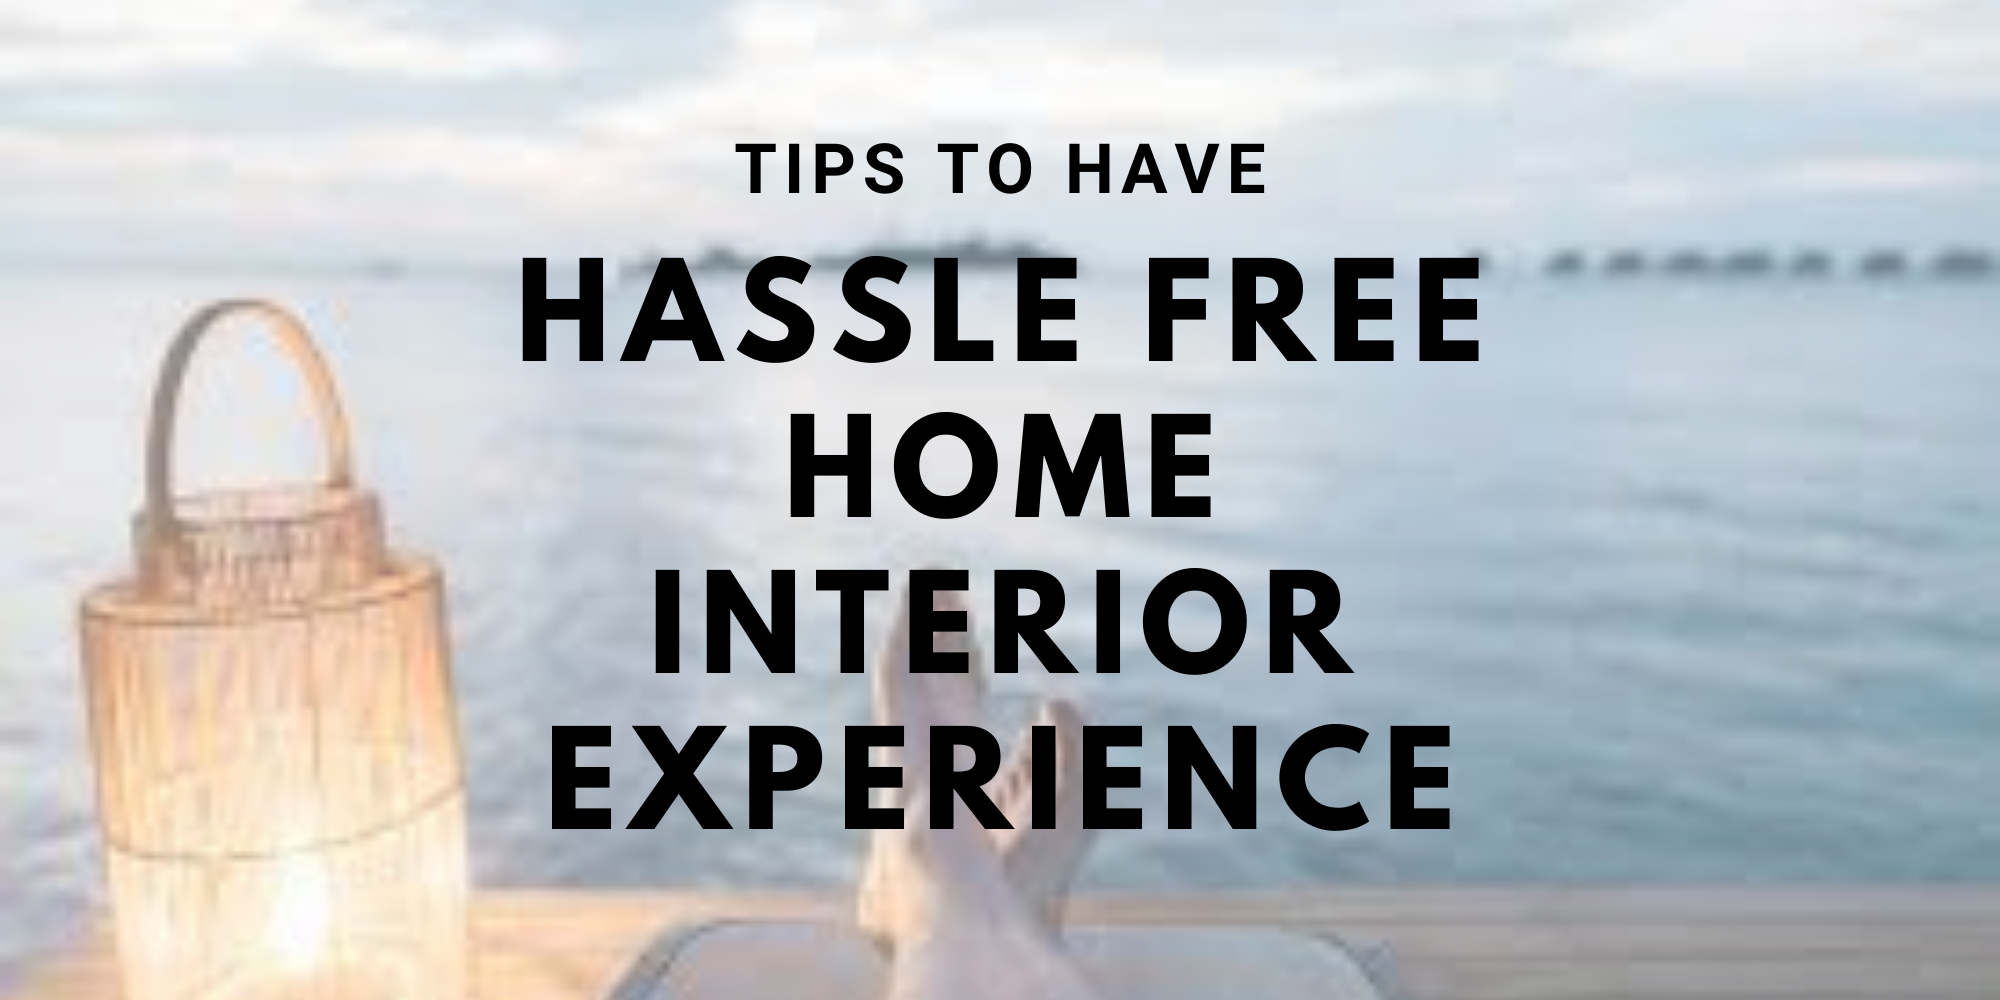 Tips to have hassle-free home interior experience